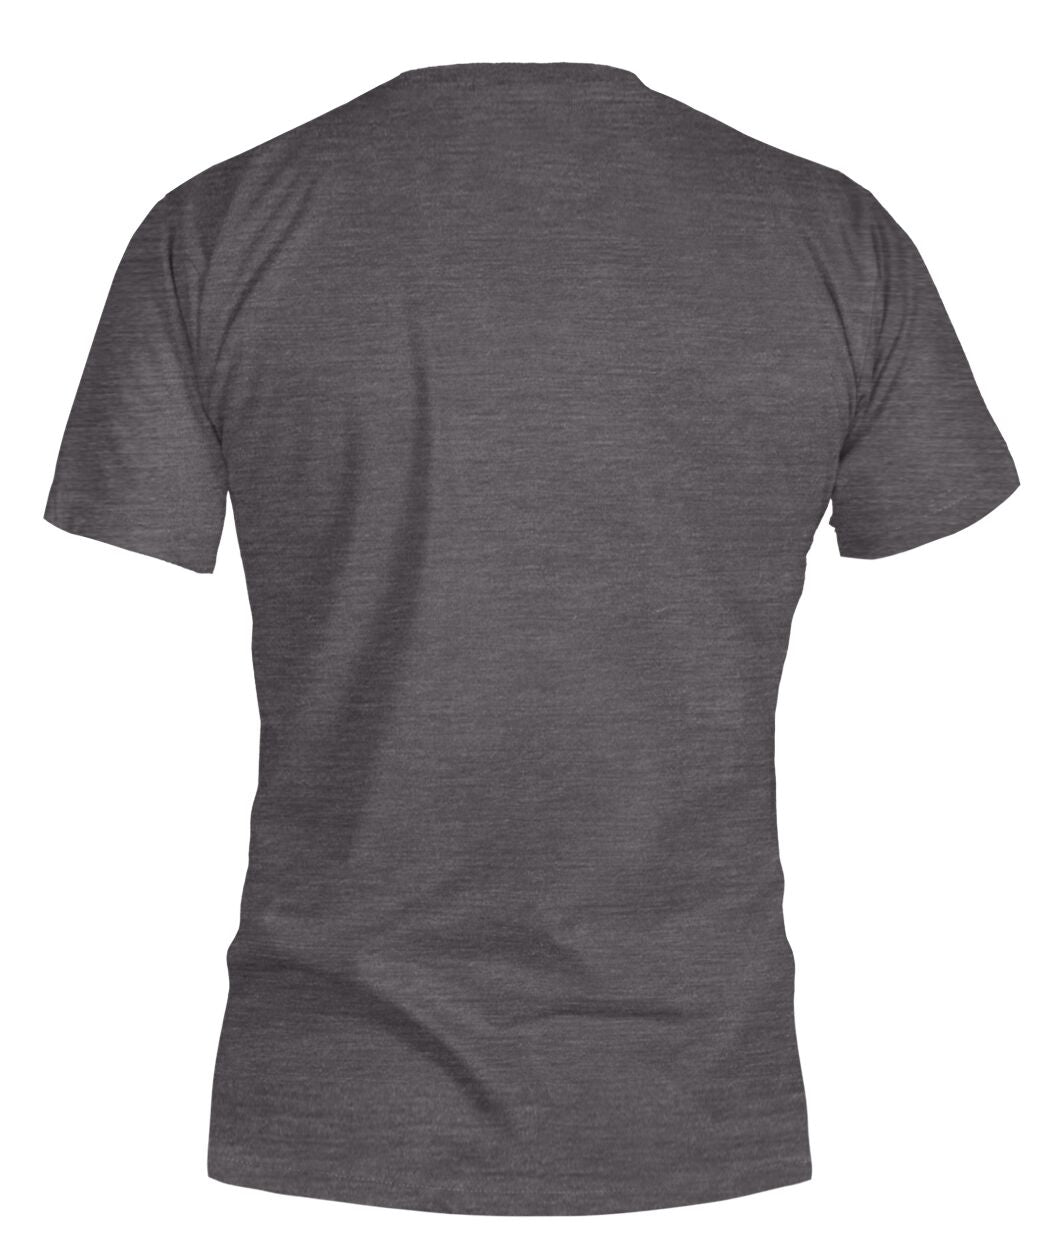 TWENTY HANDS HIGH Mens Fit Soft T-Shirt